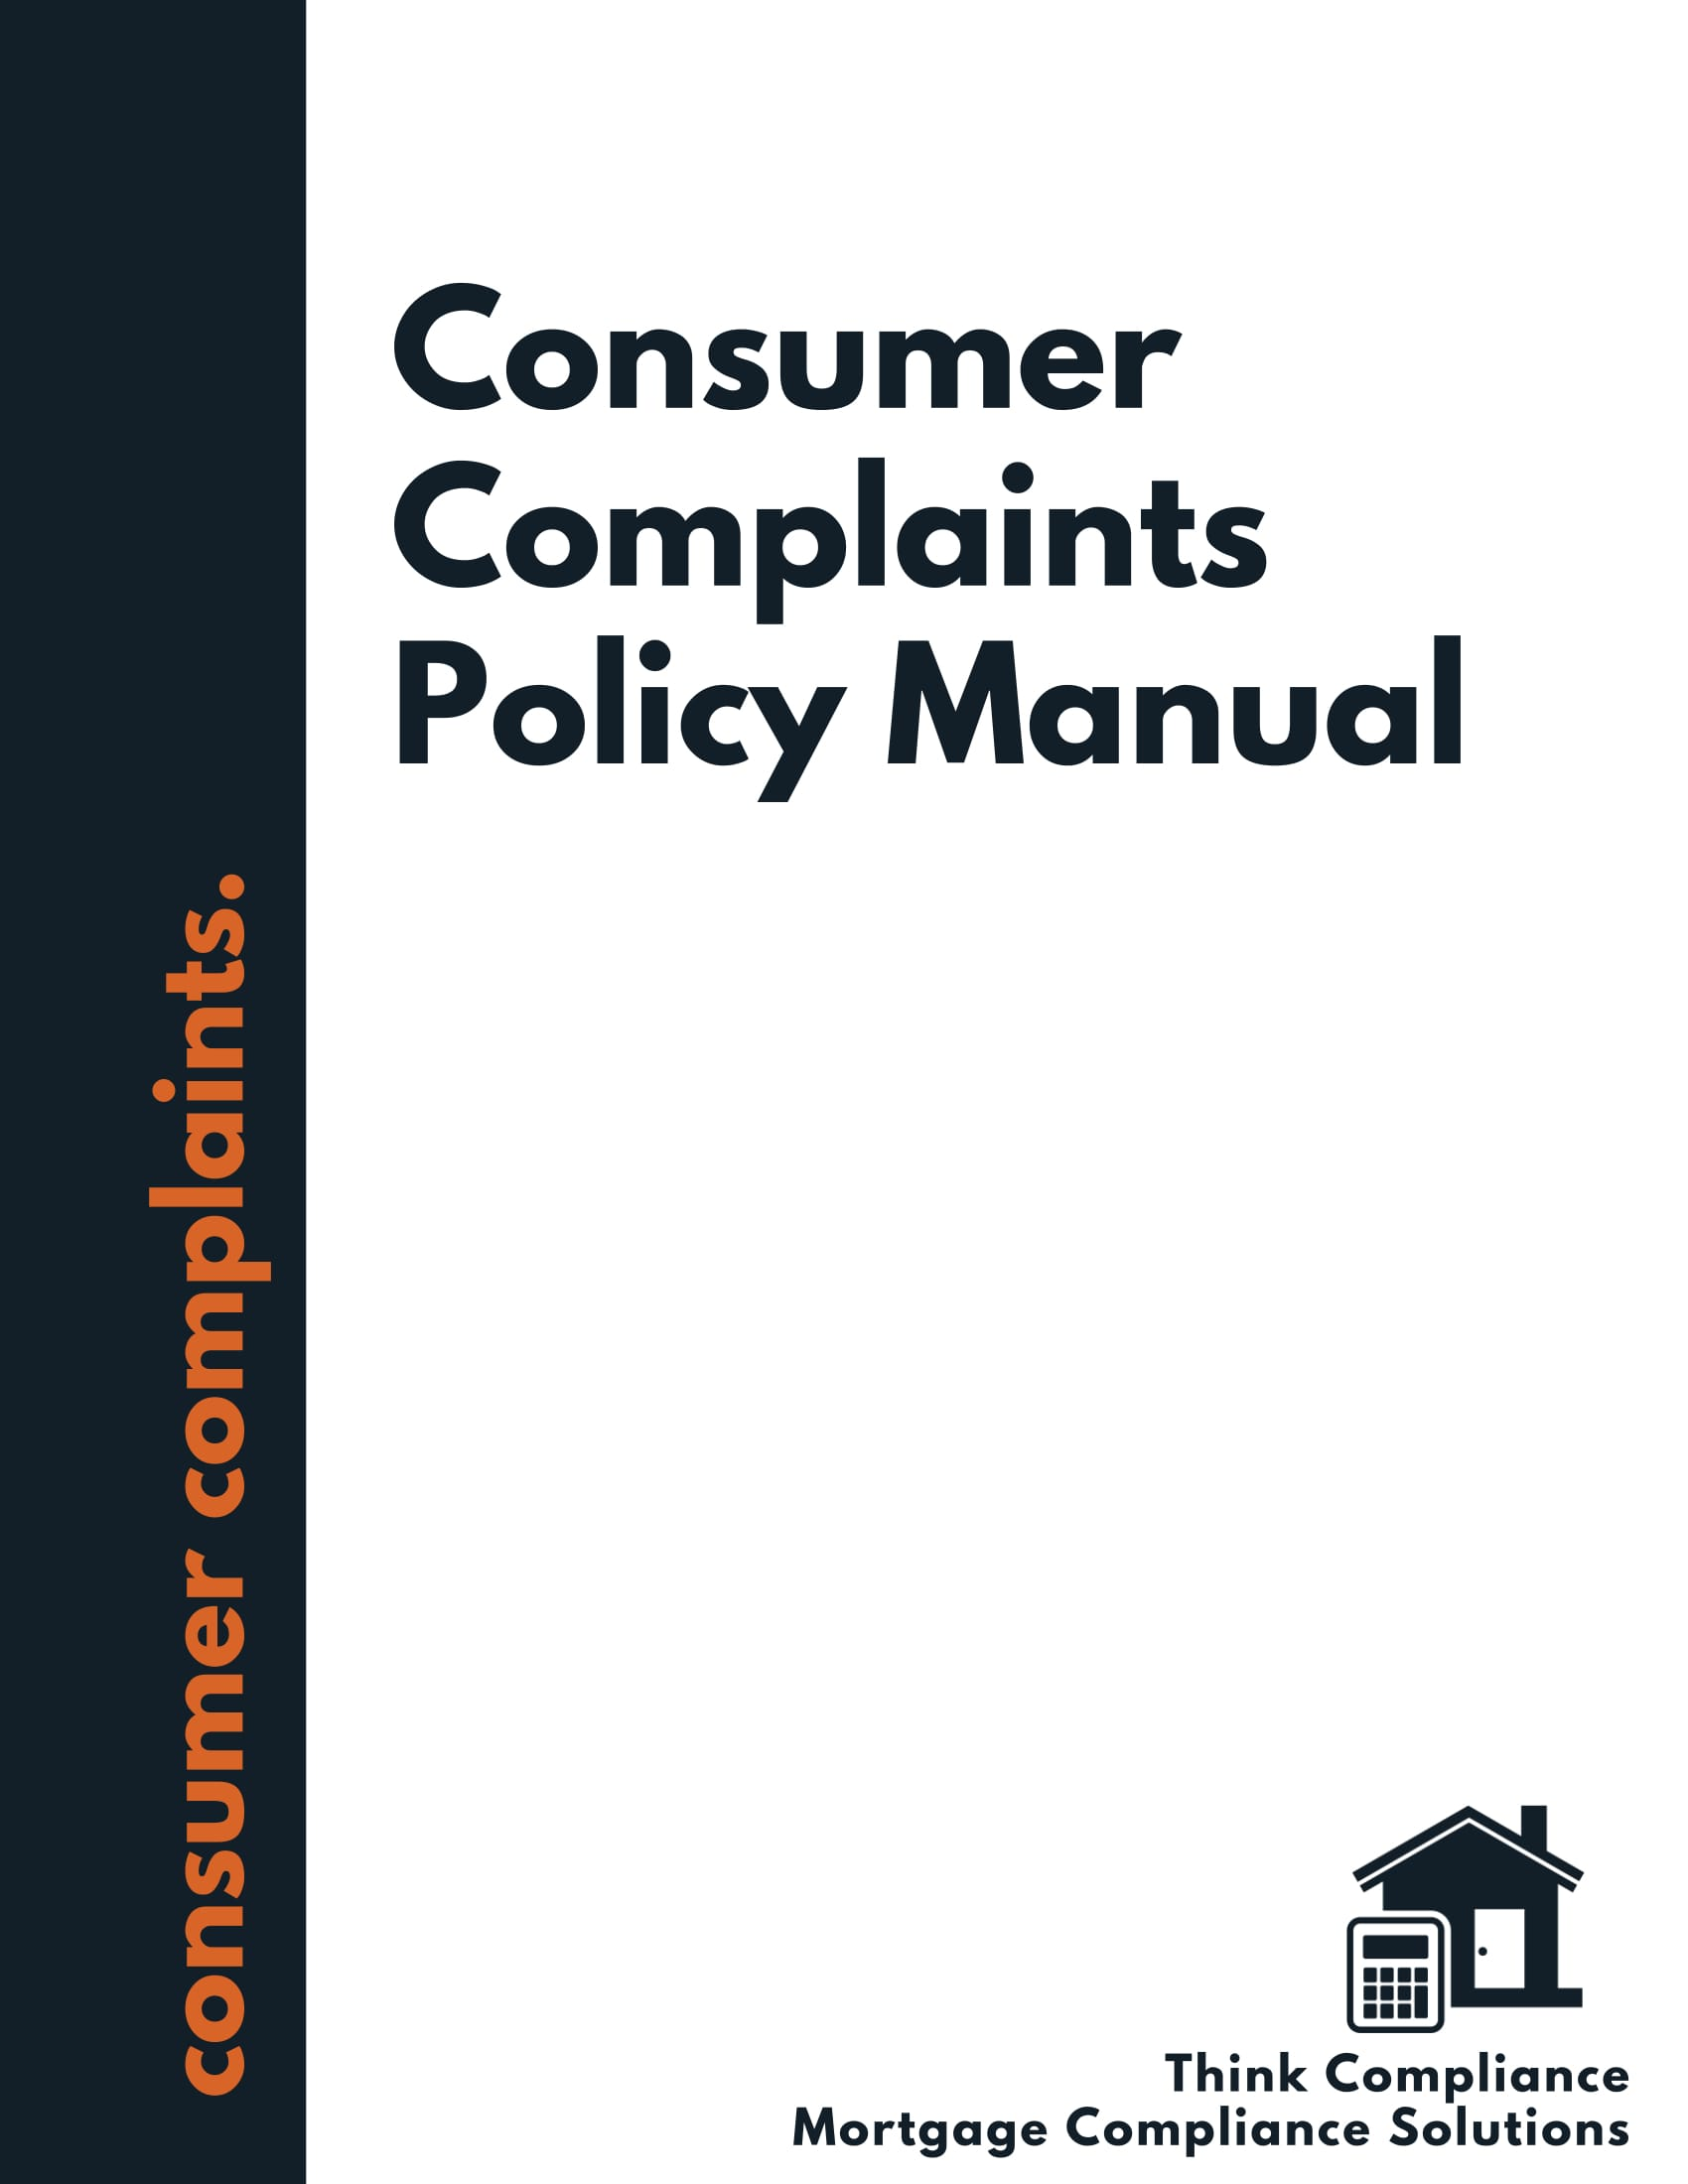 compliance policy and procedures manual